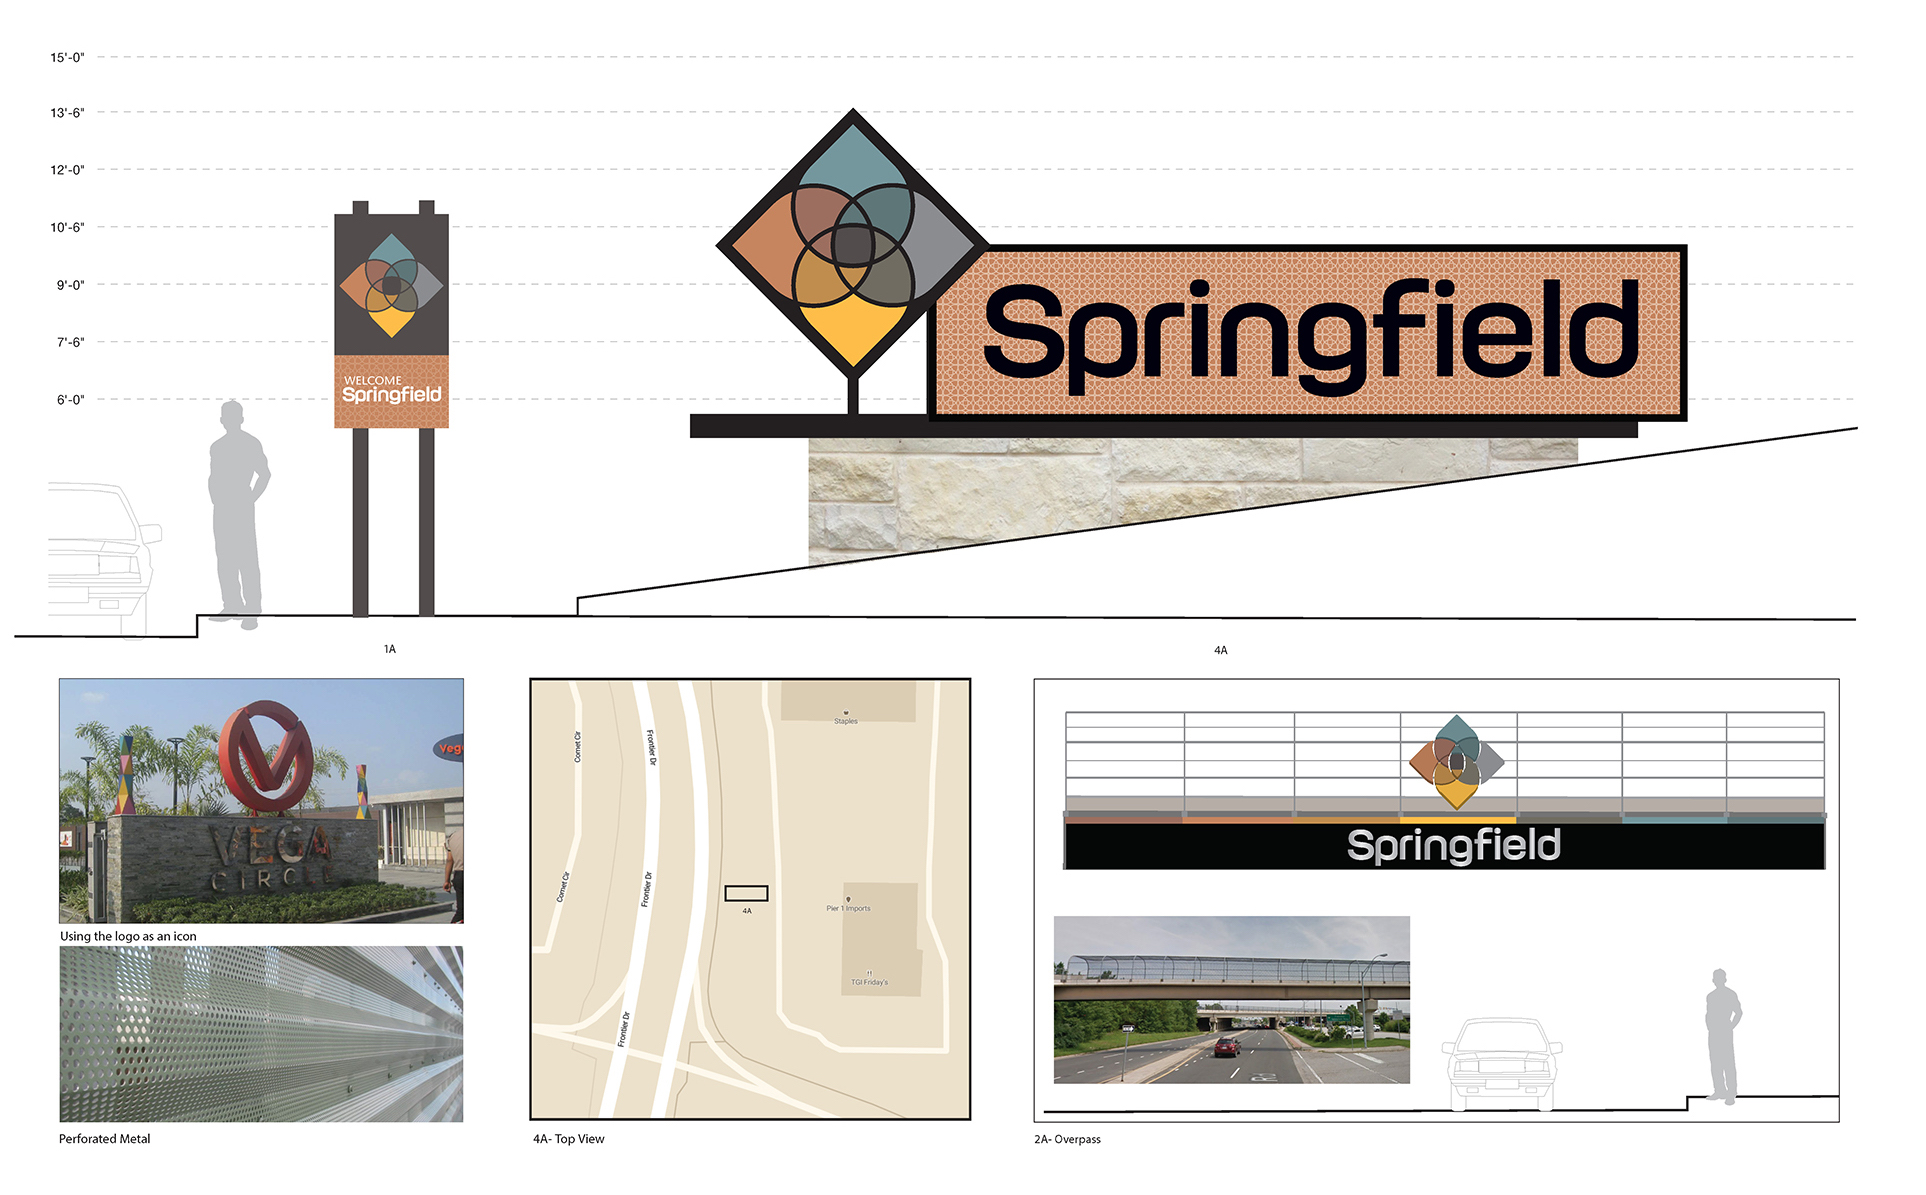 Please review the four design menus below.<br><br><strong>Option A: </strong> <strong>Simple</strong><br>This design represents a traditional possibility for Springfield. Using the Springfield logo as an icon, the design highlights the logo so that visitors driving by can recognize it from far distances.